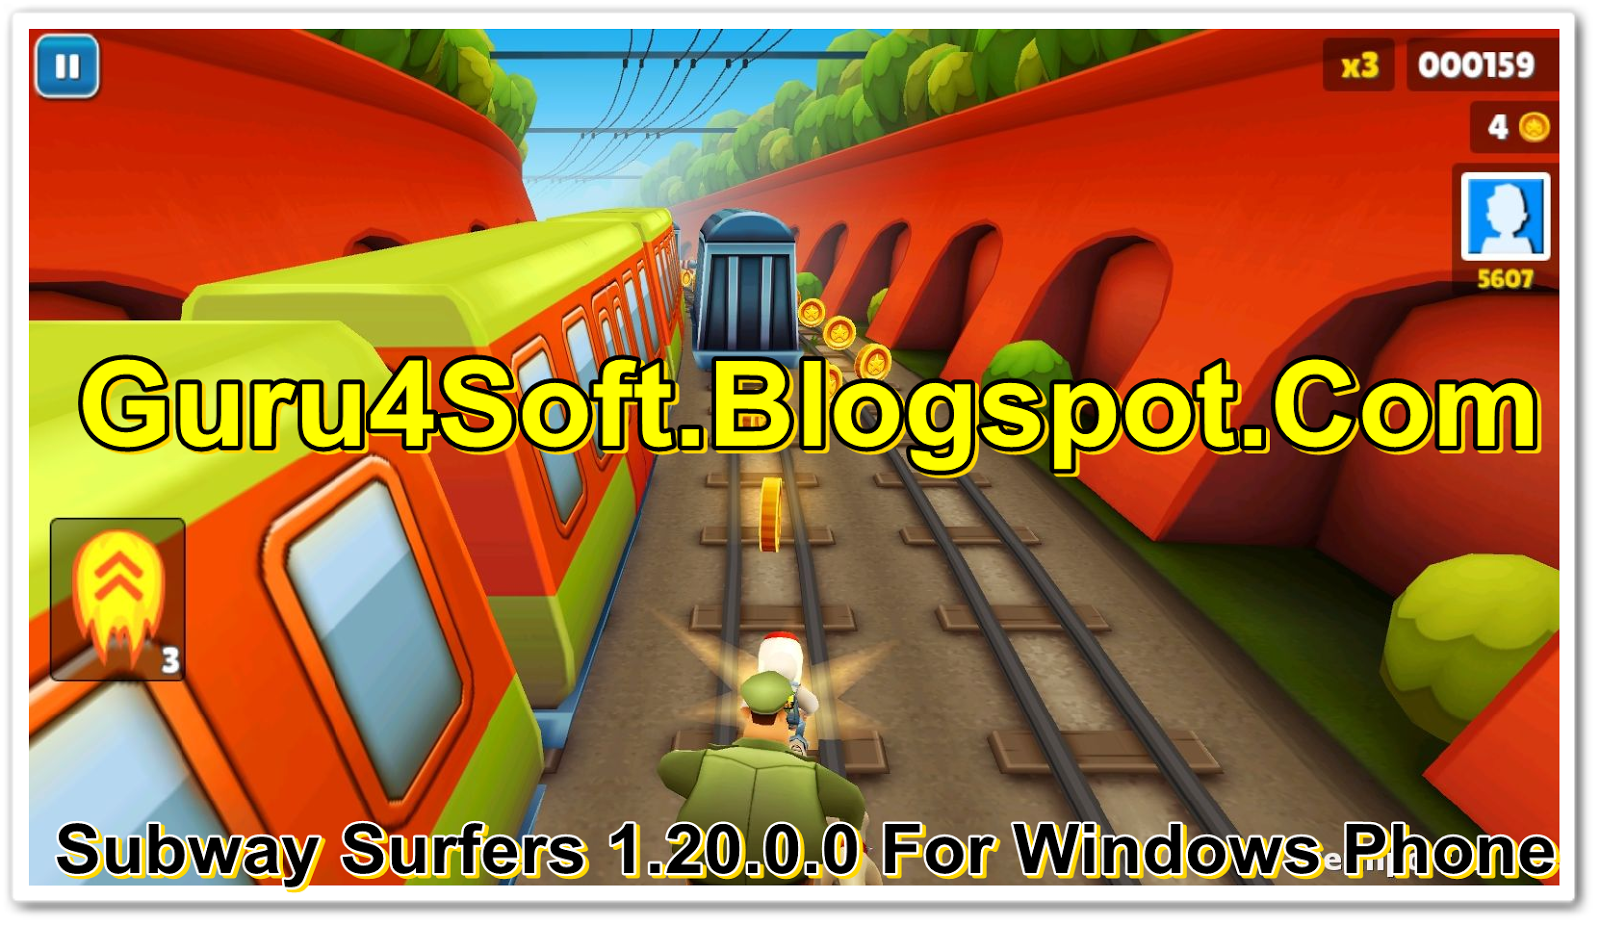 Download Subway Surfers 1.20.0.0 For Windows Phone